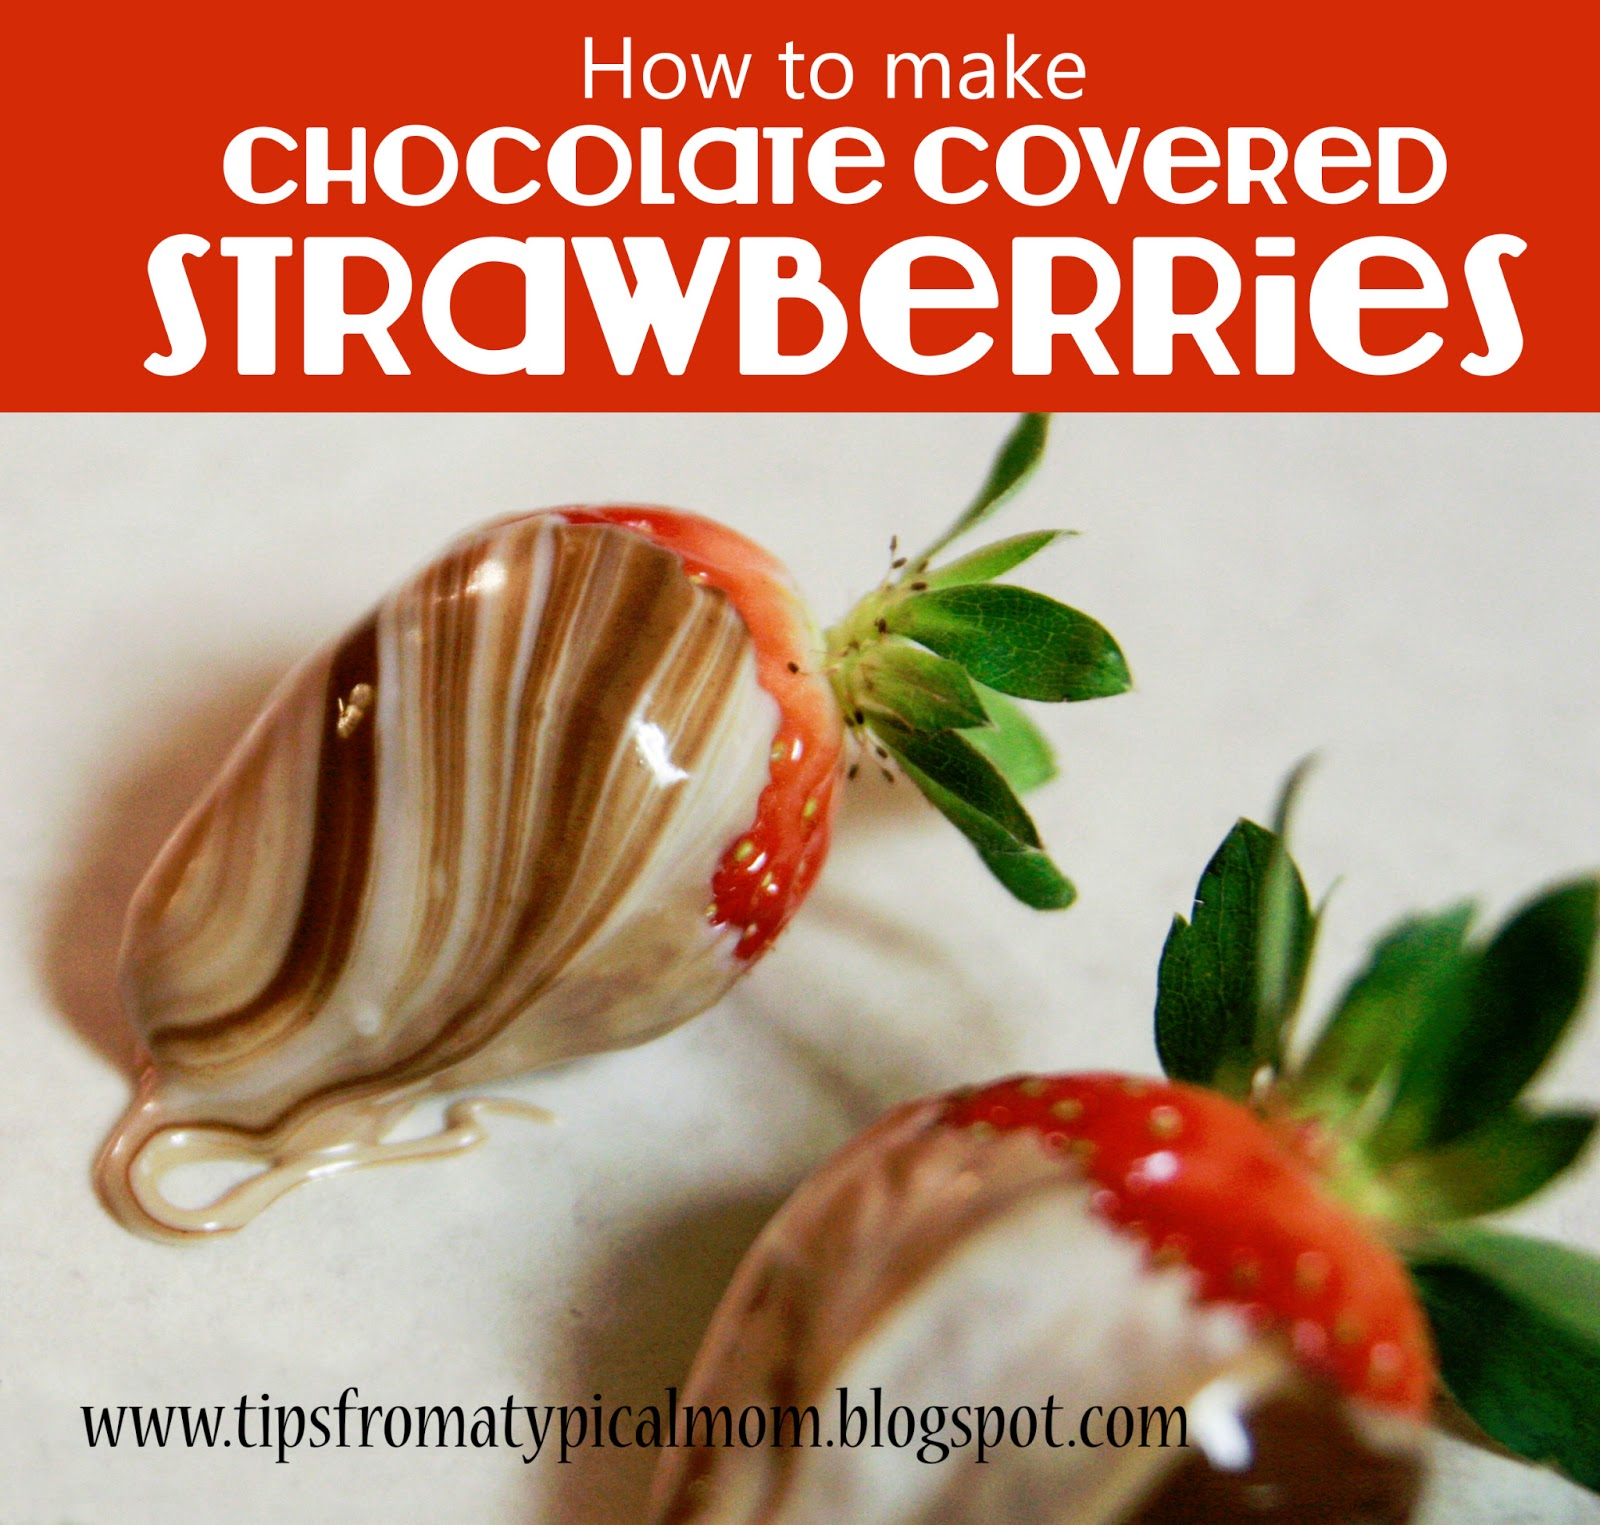 How To Make Chocolate Covered Strawberries And Make Them Look Fancy Tips From A Typical Mom